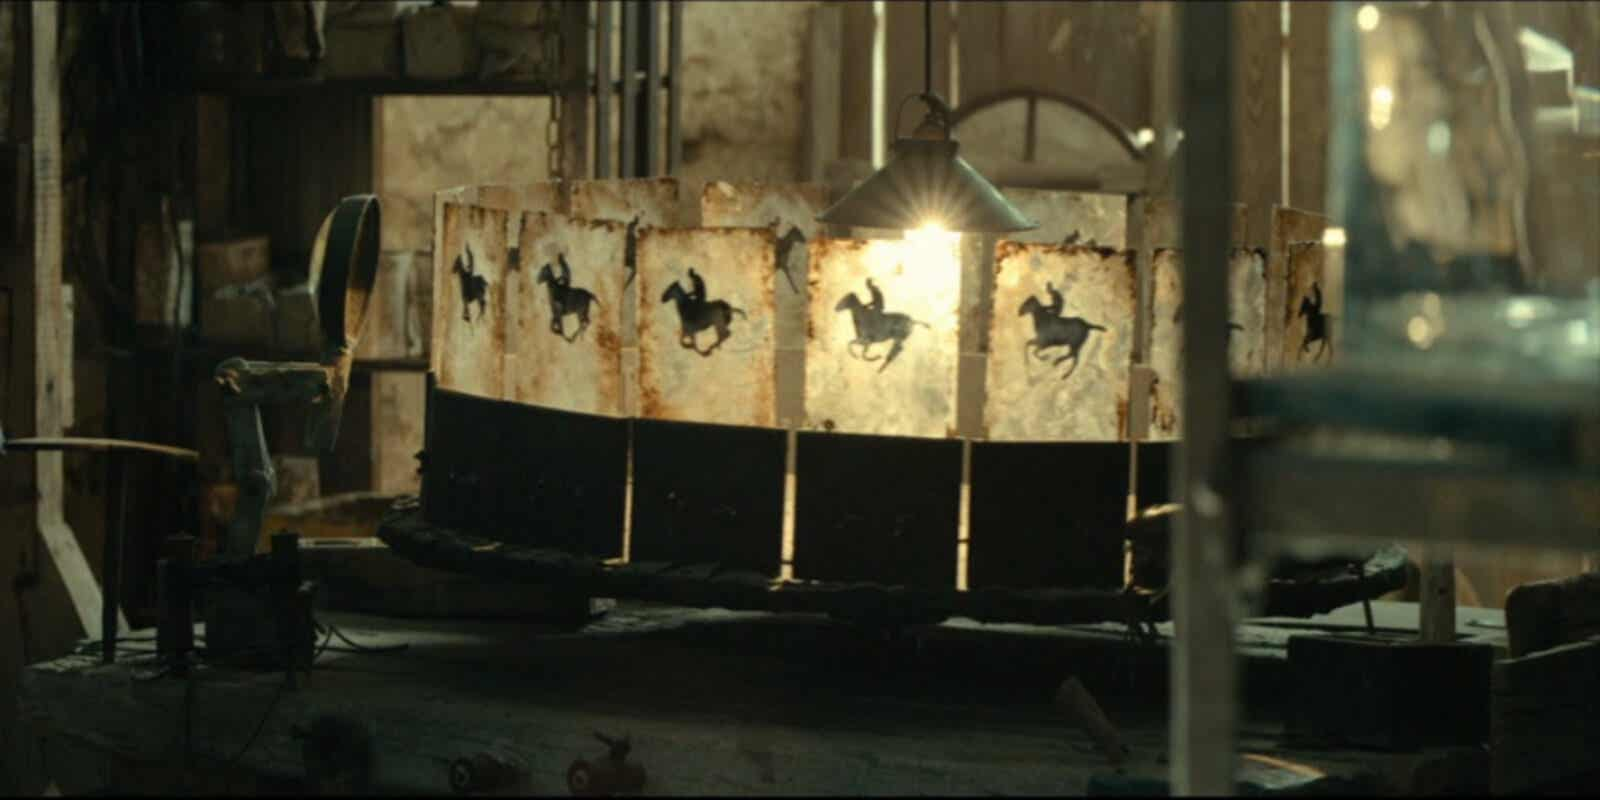 A zoetrope showing a horse and rider.